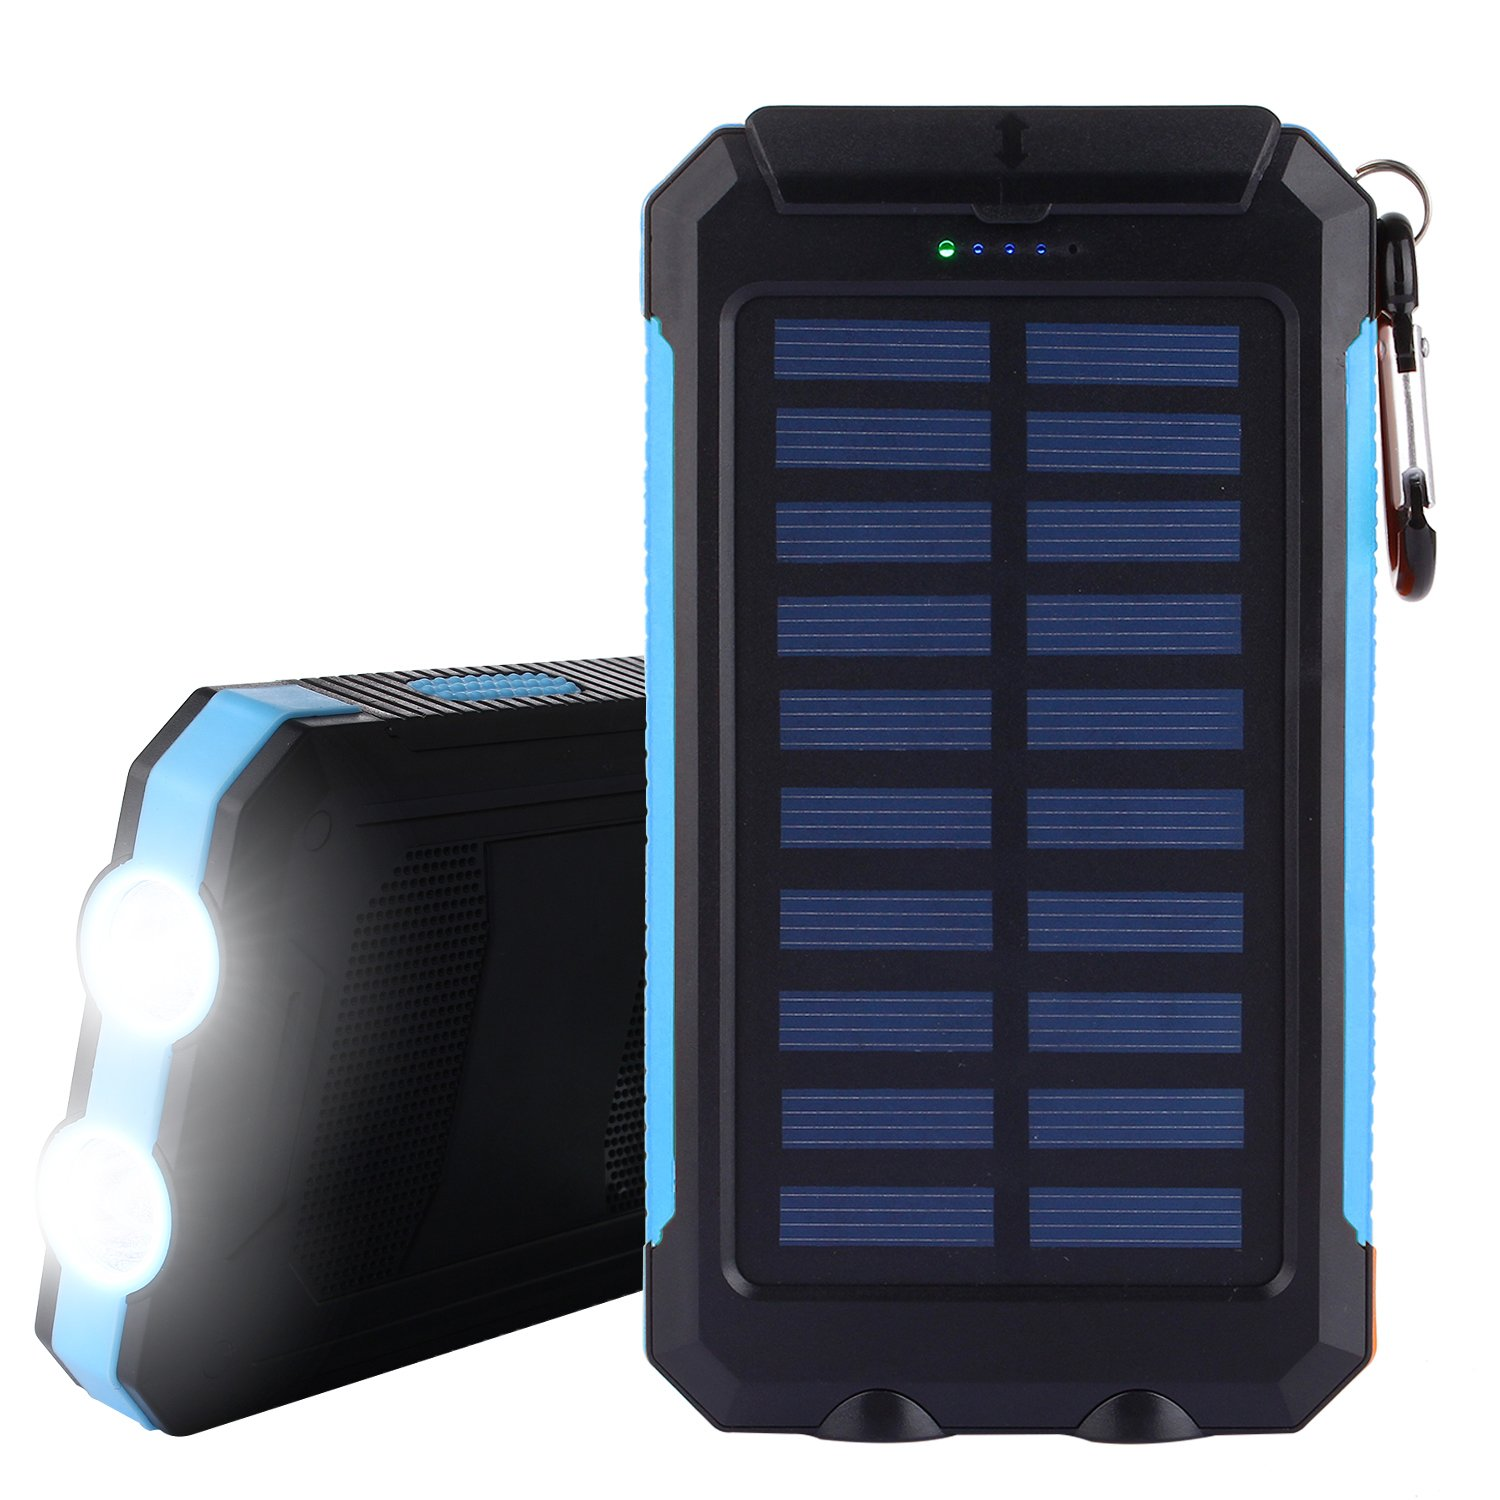 Solar Charger, Solar Power Bank 10000mAh External Backup Battery Pack Dual USB Solar Panel Charger with 2LED Light Carabiner Compass Portable for Emergency Outdoor Camping Travel (Blue)